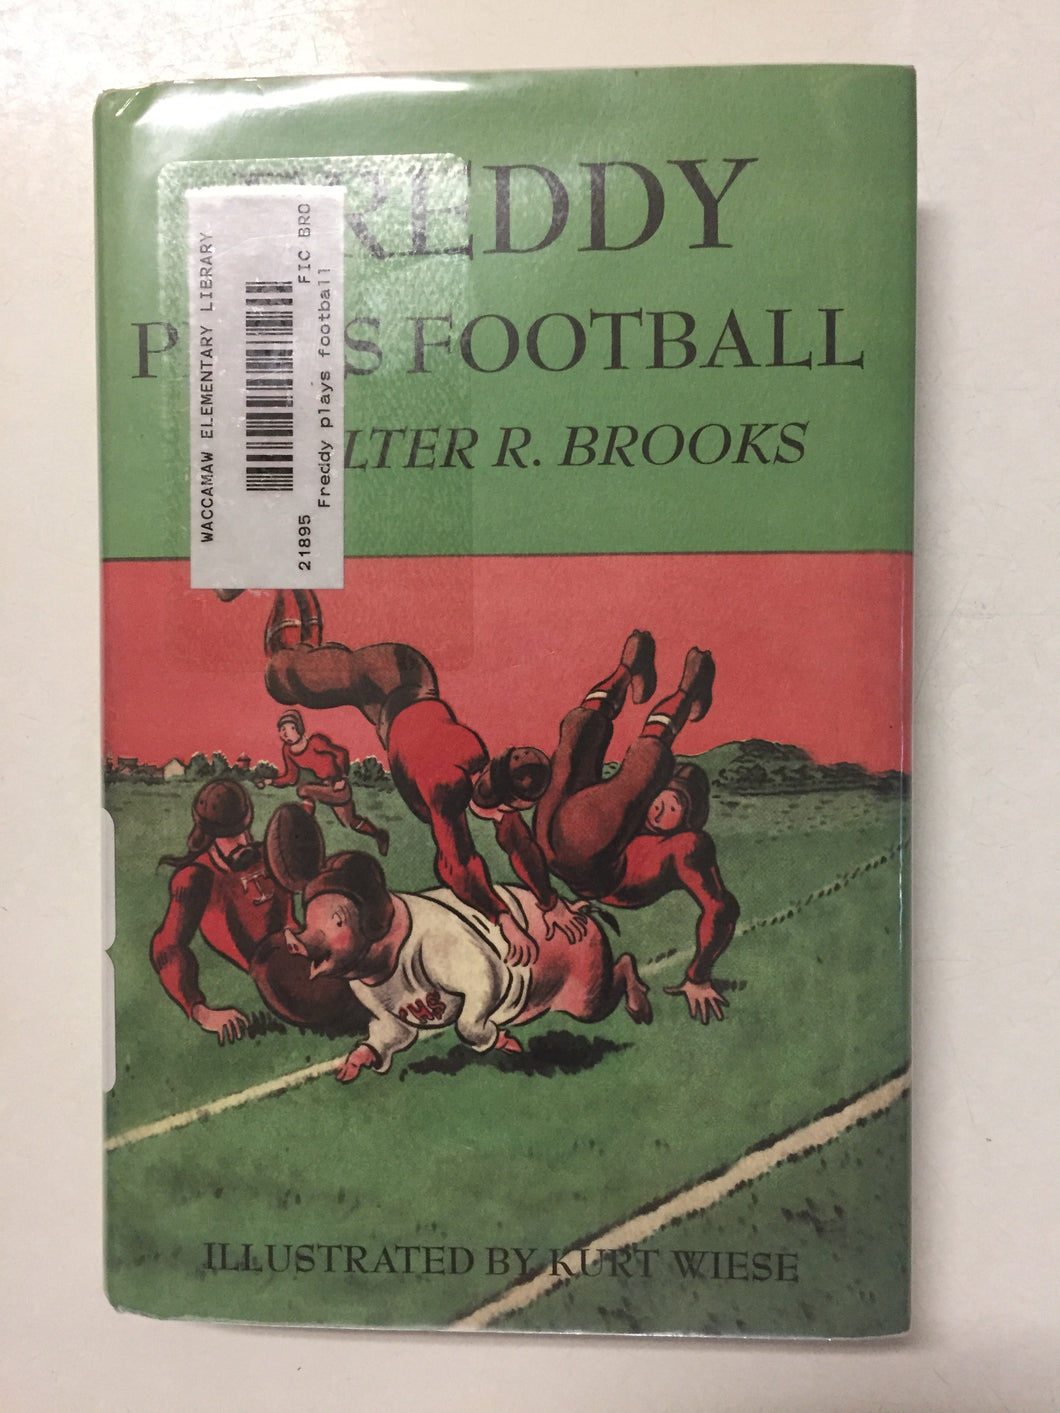 Freddy Plays Football - Slick Cat Books